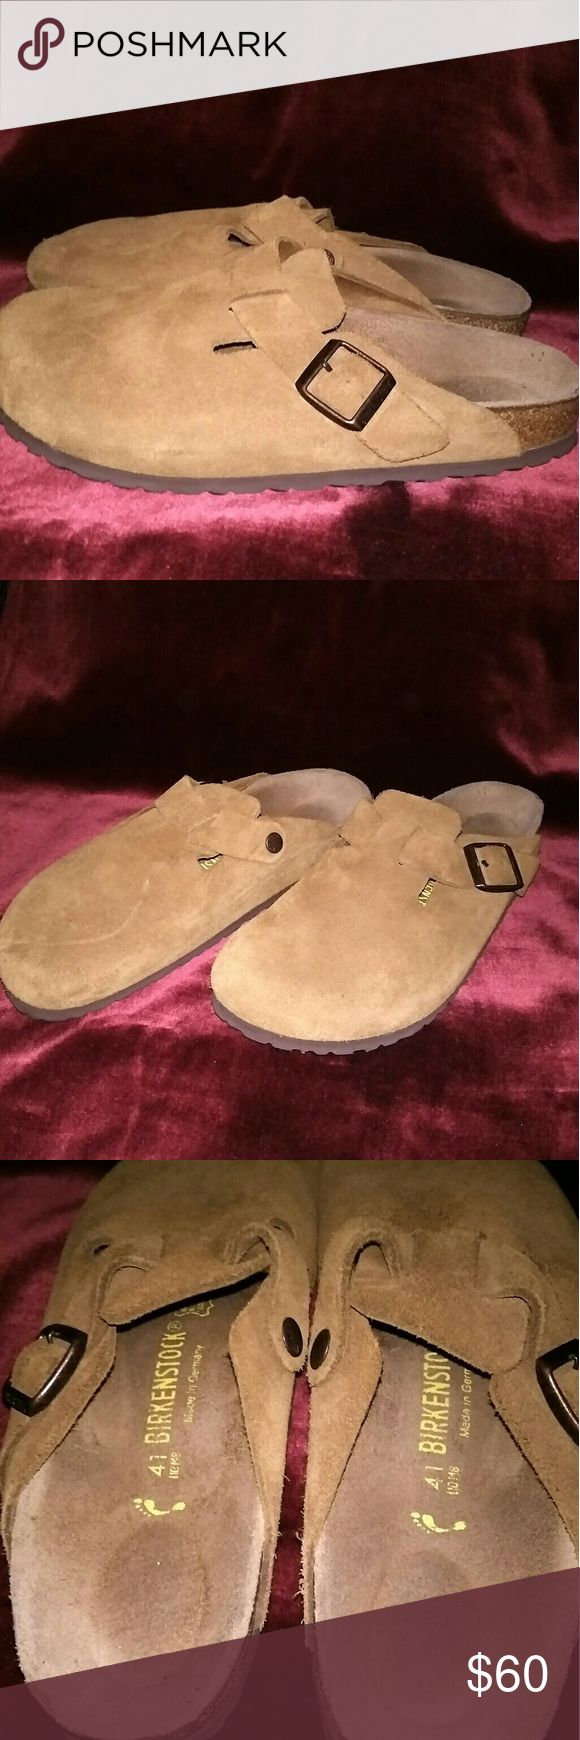 Birkenstock Boston Tan Suede Clog Shoe Size 41 Like new condition, size 41 which translates to a woman's 10, and men's 8, soft foot bed, soles show no wear. Non smoker home Please view photos carefully as they are part of the discription. Birkenstock Shoes Mules & Clogs